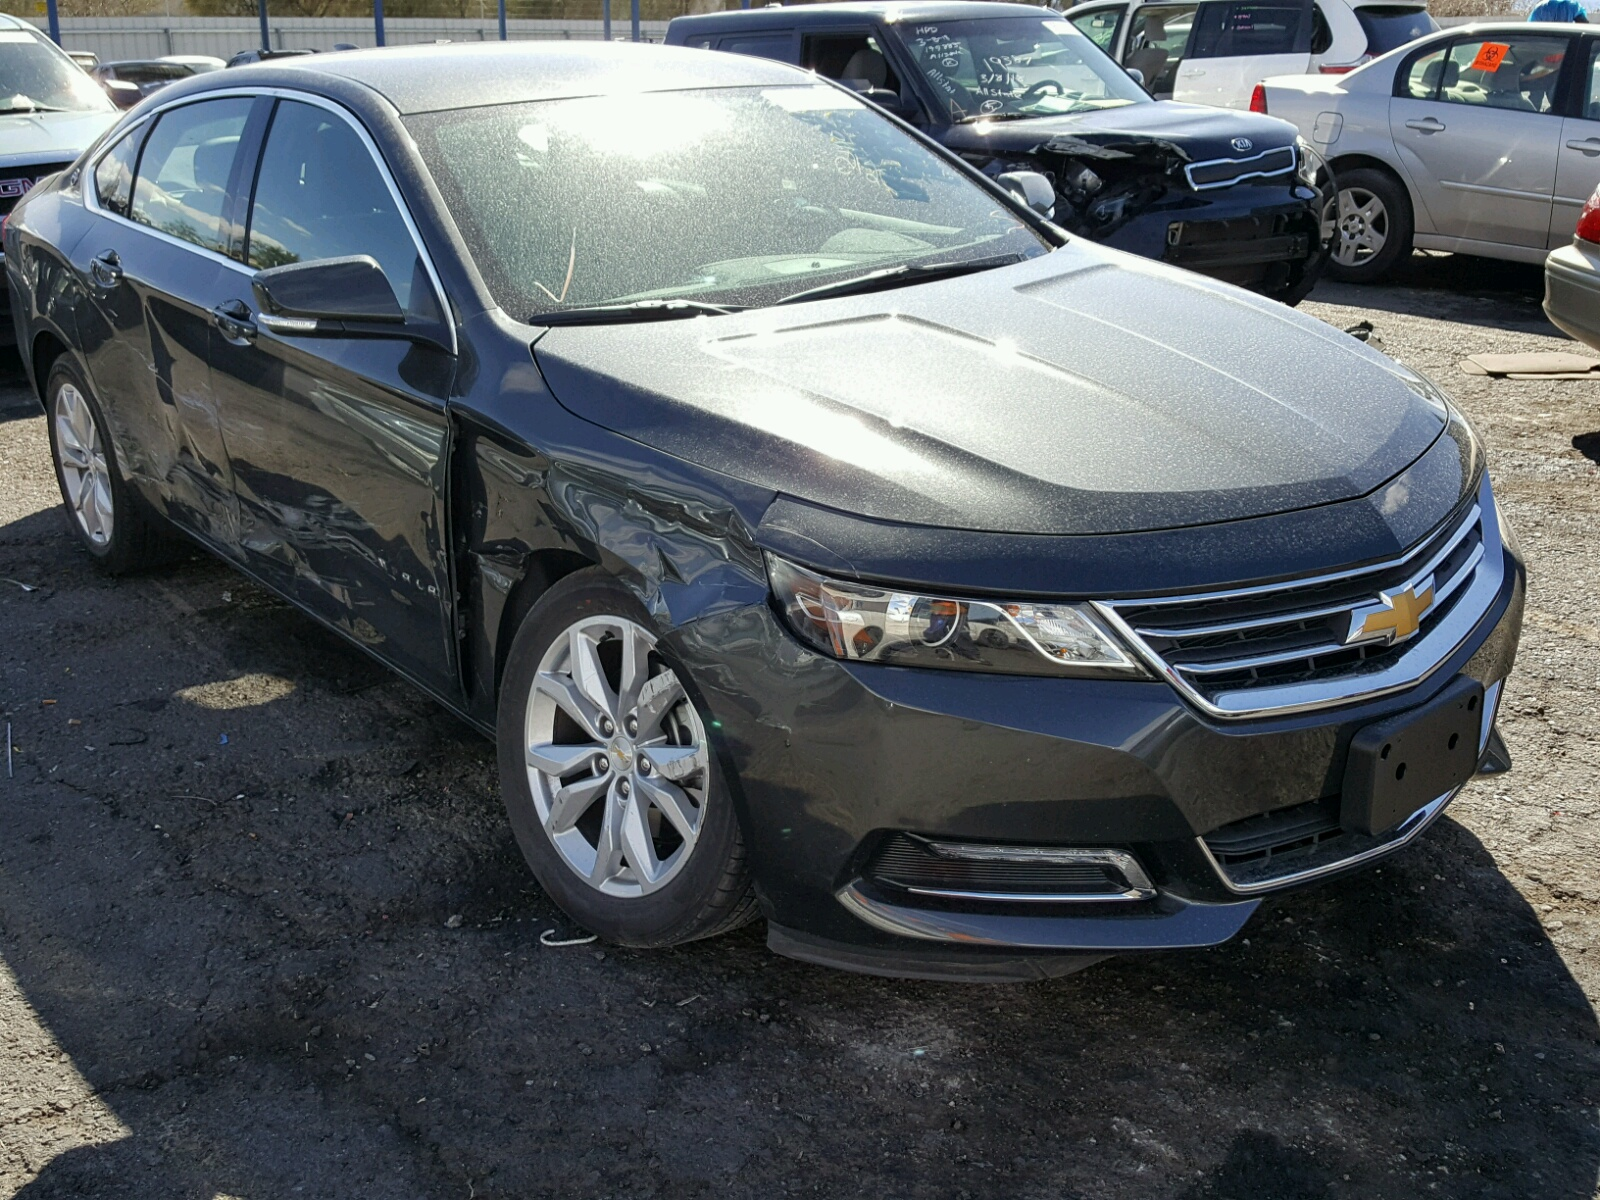 Auto Auction Ended on VIN 2G1105S35J 2018 CHEVROLET IMPALA